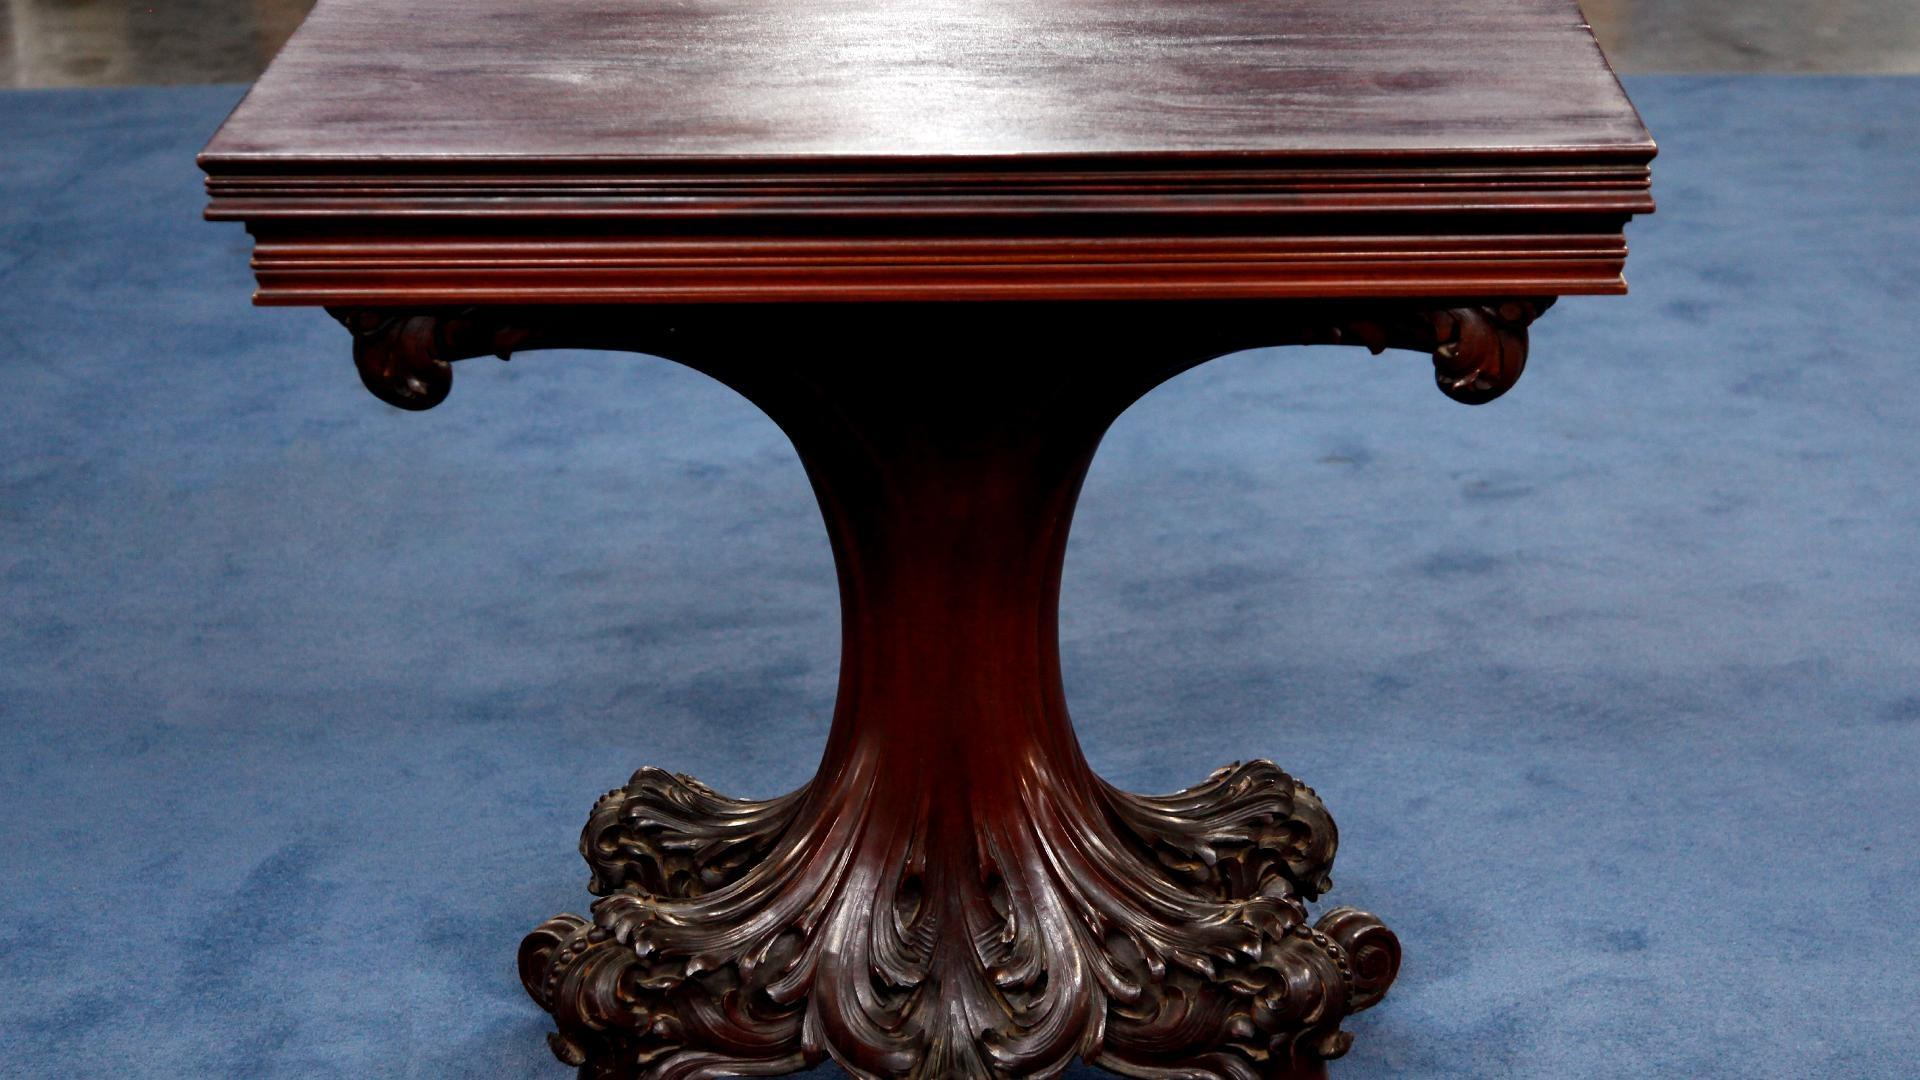 Video S16 Ep14 Appraisal Tobey Furniture Company Card Table Ca Watch Antiques Roadshow